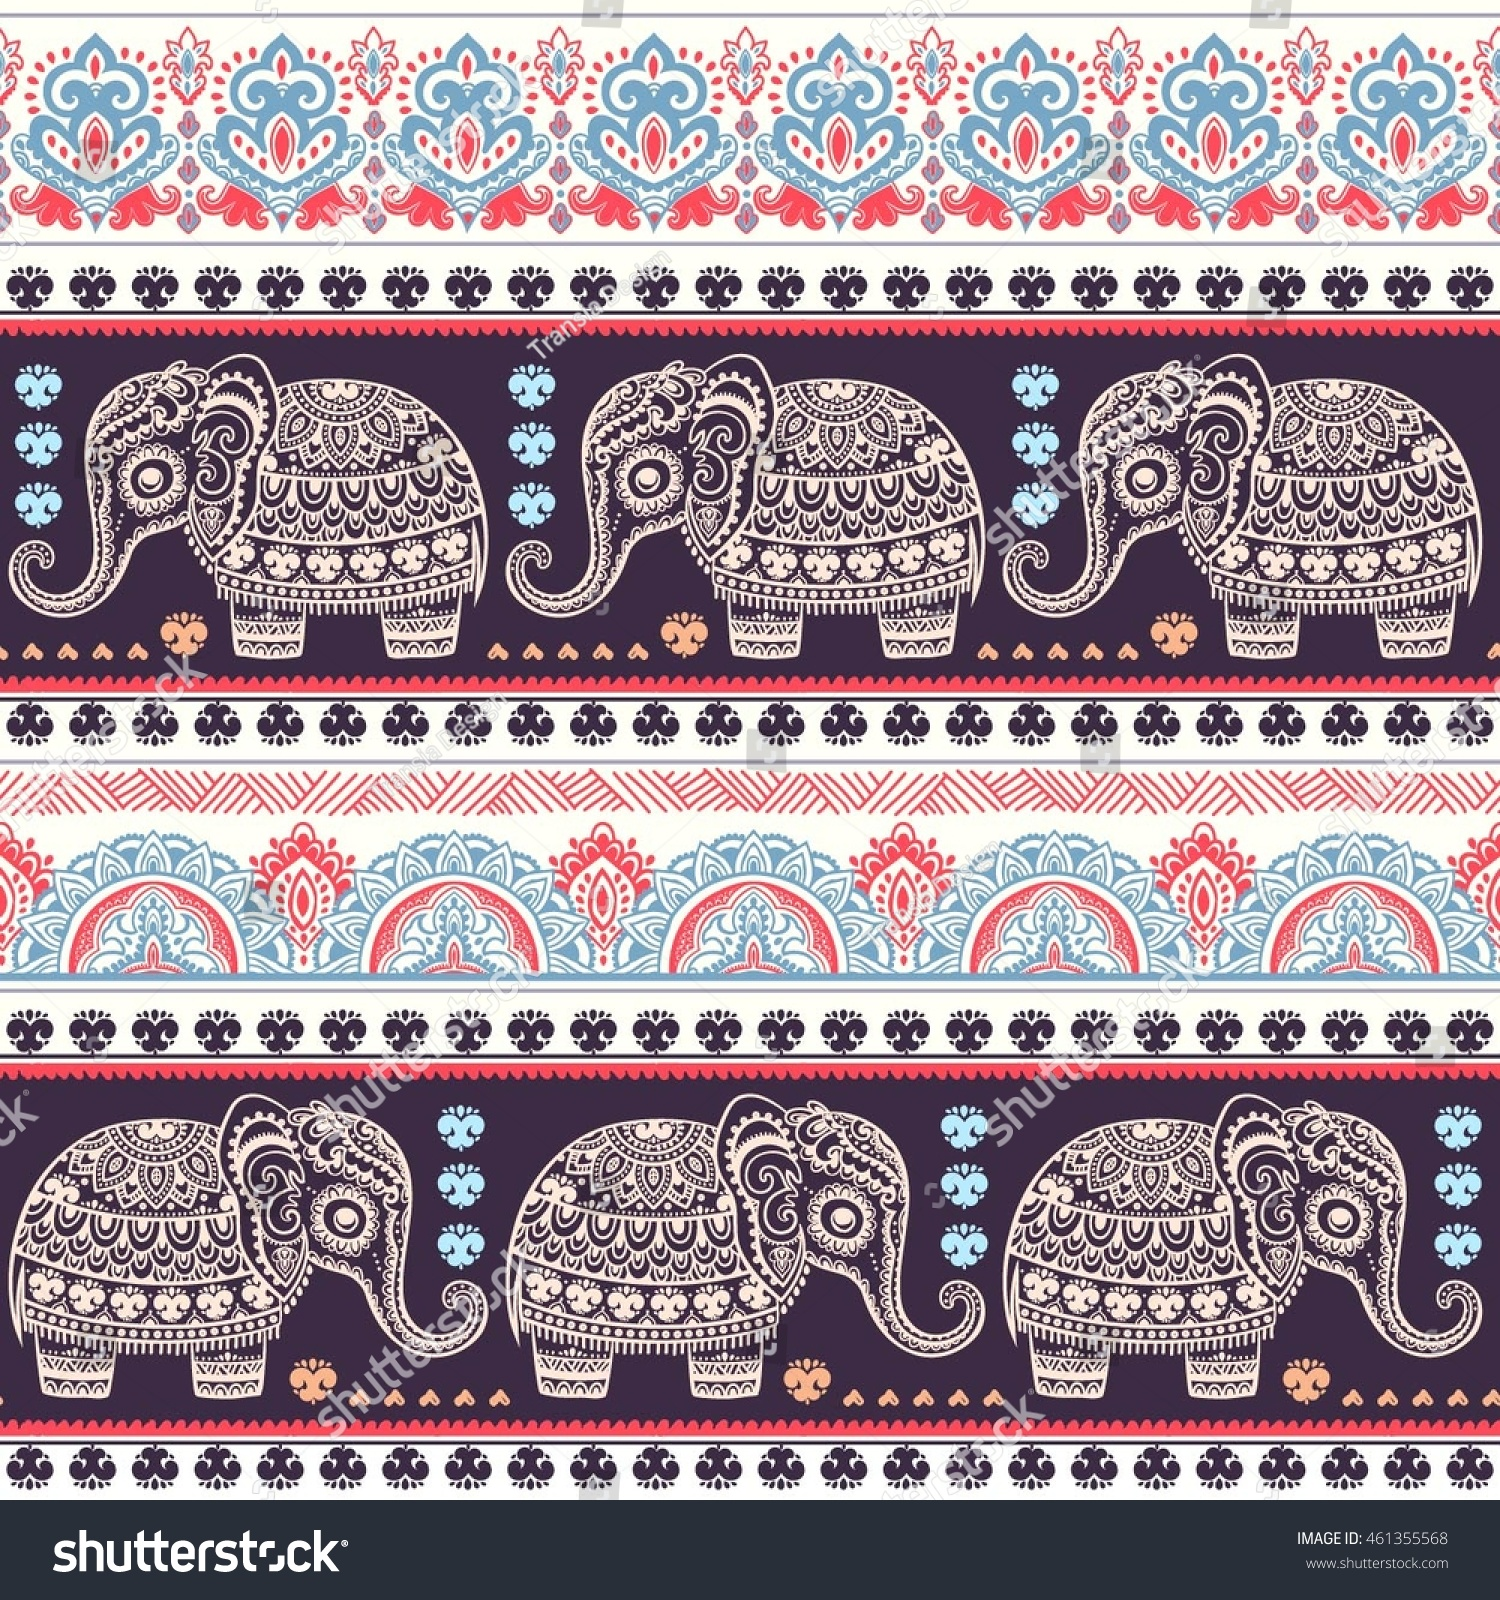 Vintage graphic vector Indian lotus ethnic elephant African tribal ornament Can be used for a coloring book textile prints phone case greeting card